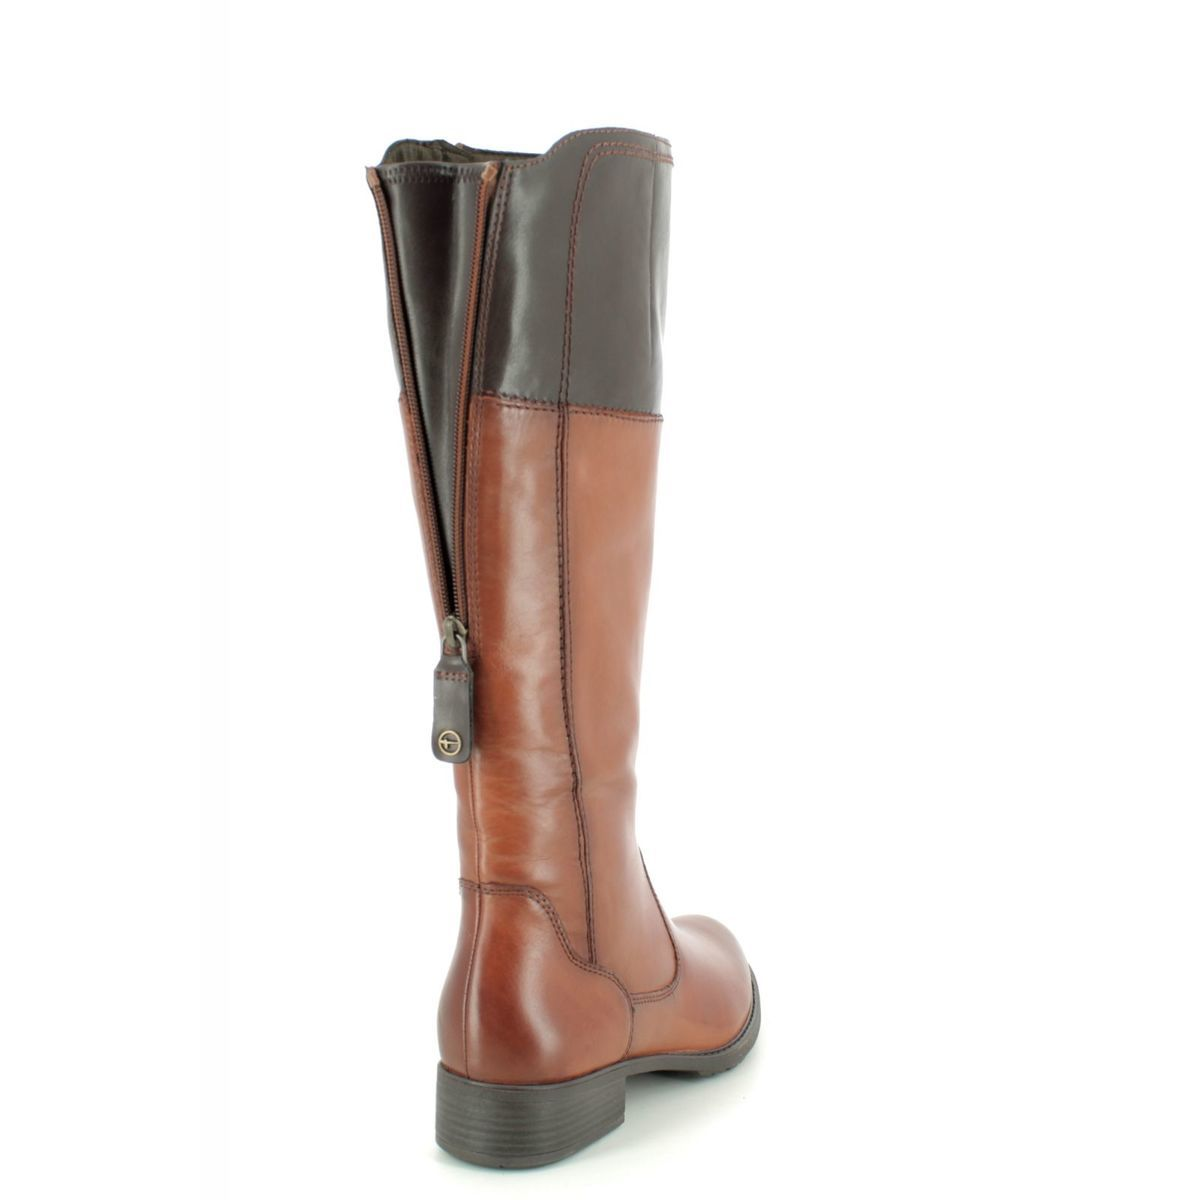 25508-23-378 Tan Leather knee-high boots